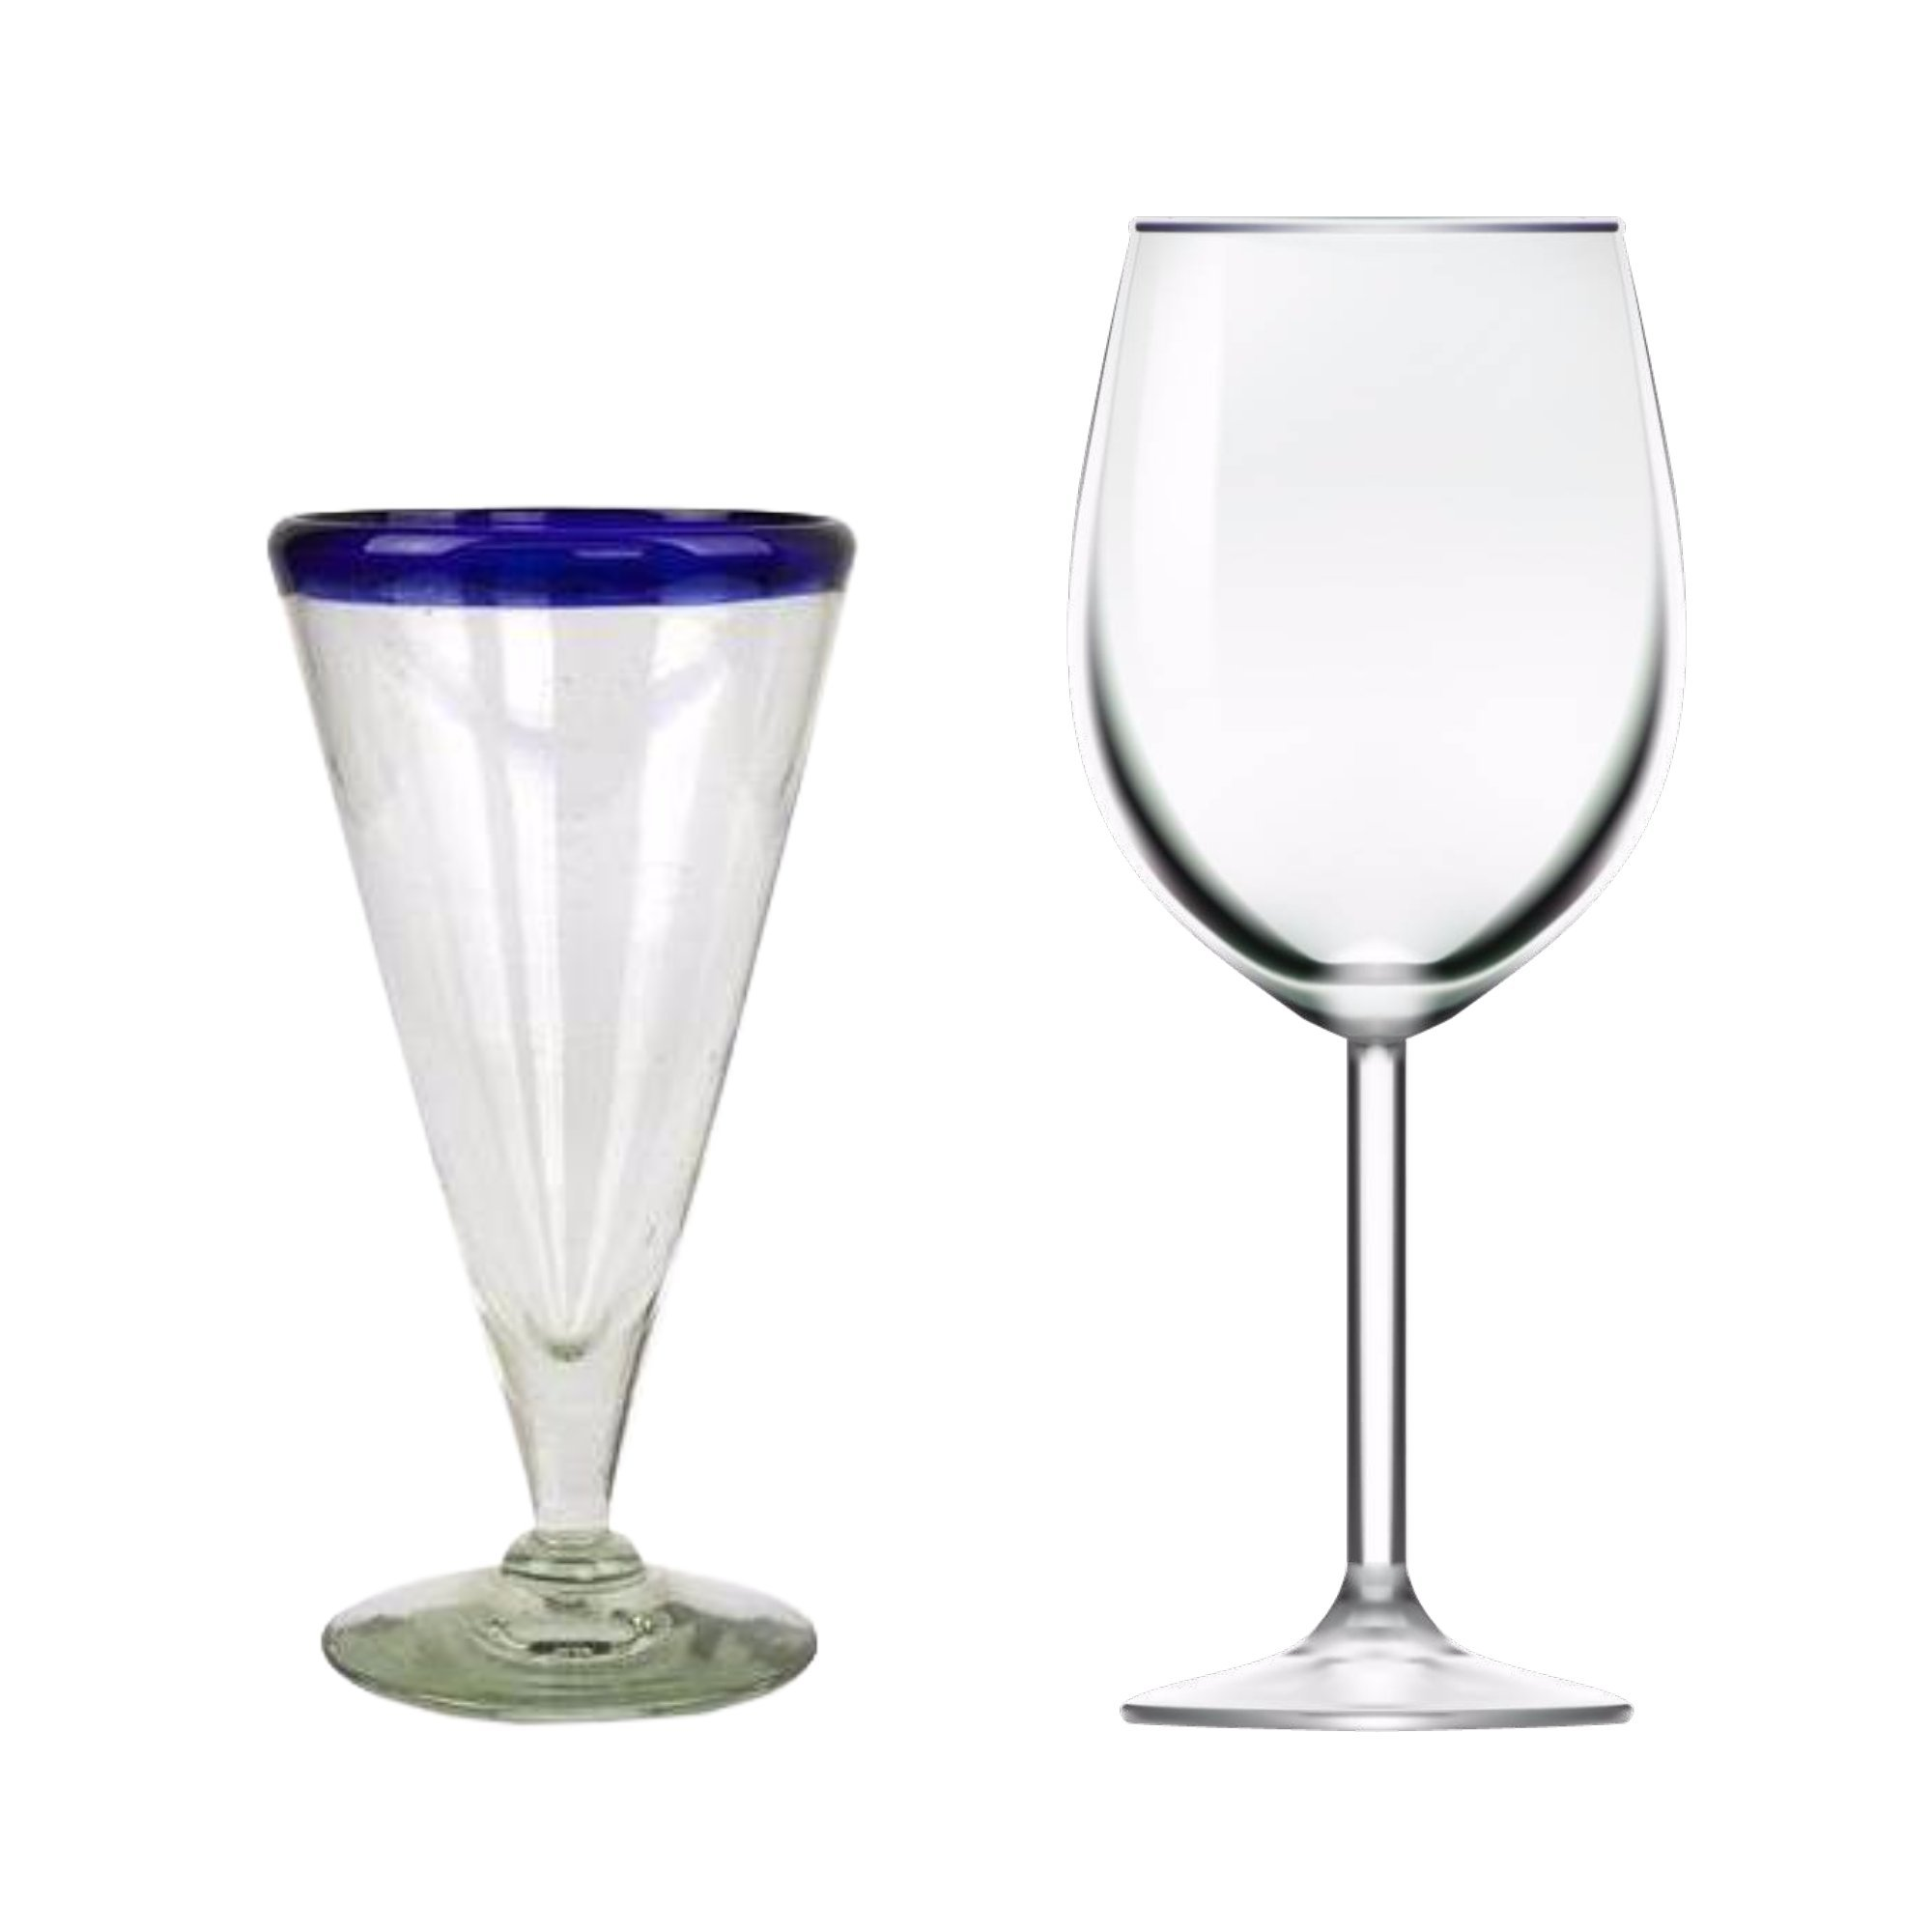 NOVICA Artisan Crafted Hand Blown Recycled Glass Clear Cobalt Blue Rim Cocktail Glasses, 8 oz 'Bohemia' (set of 6) by NOVICA (Image #3)